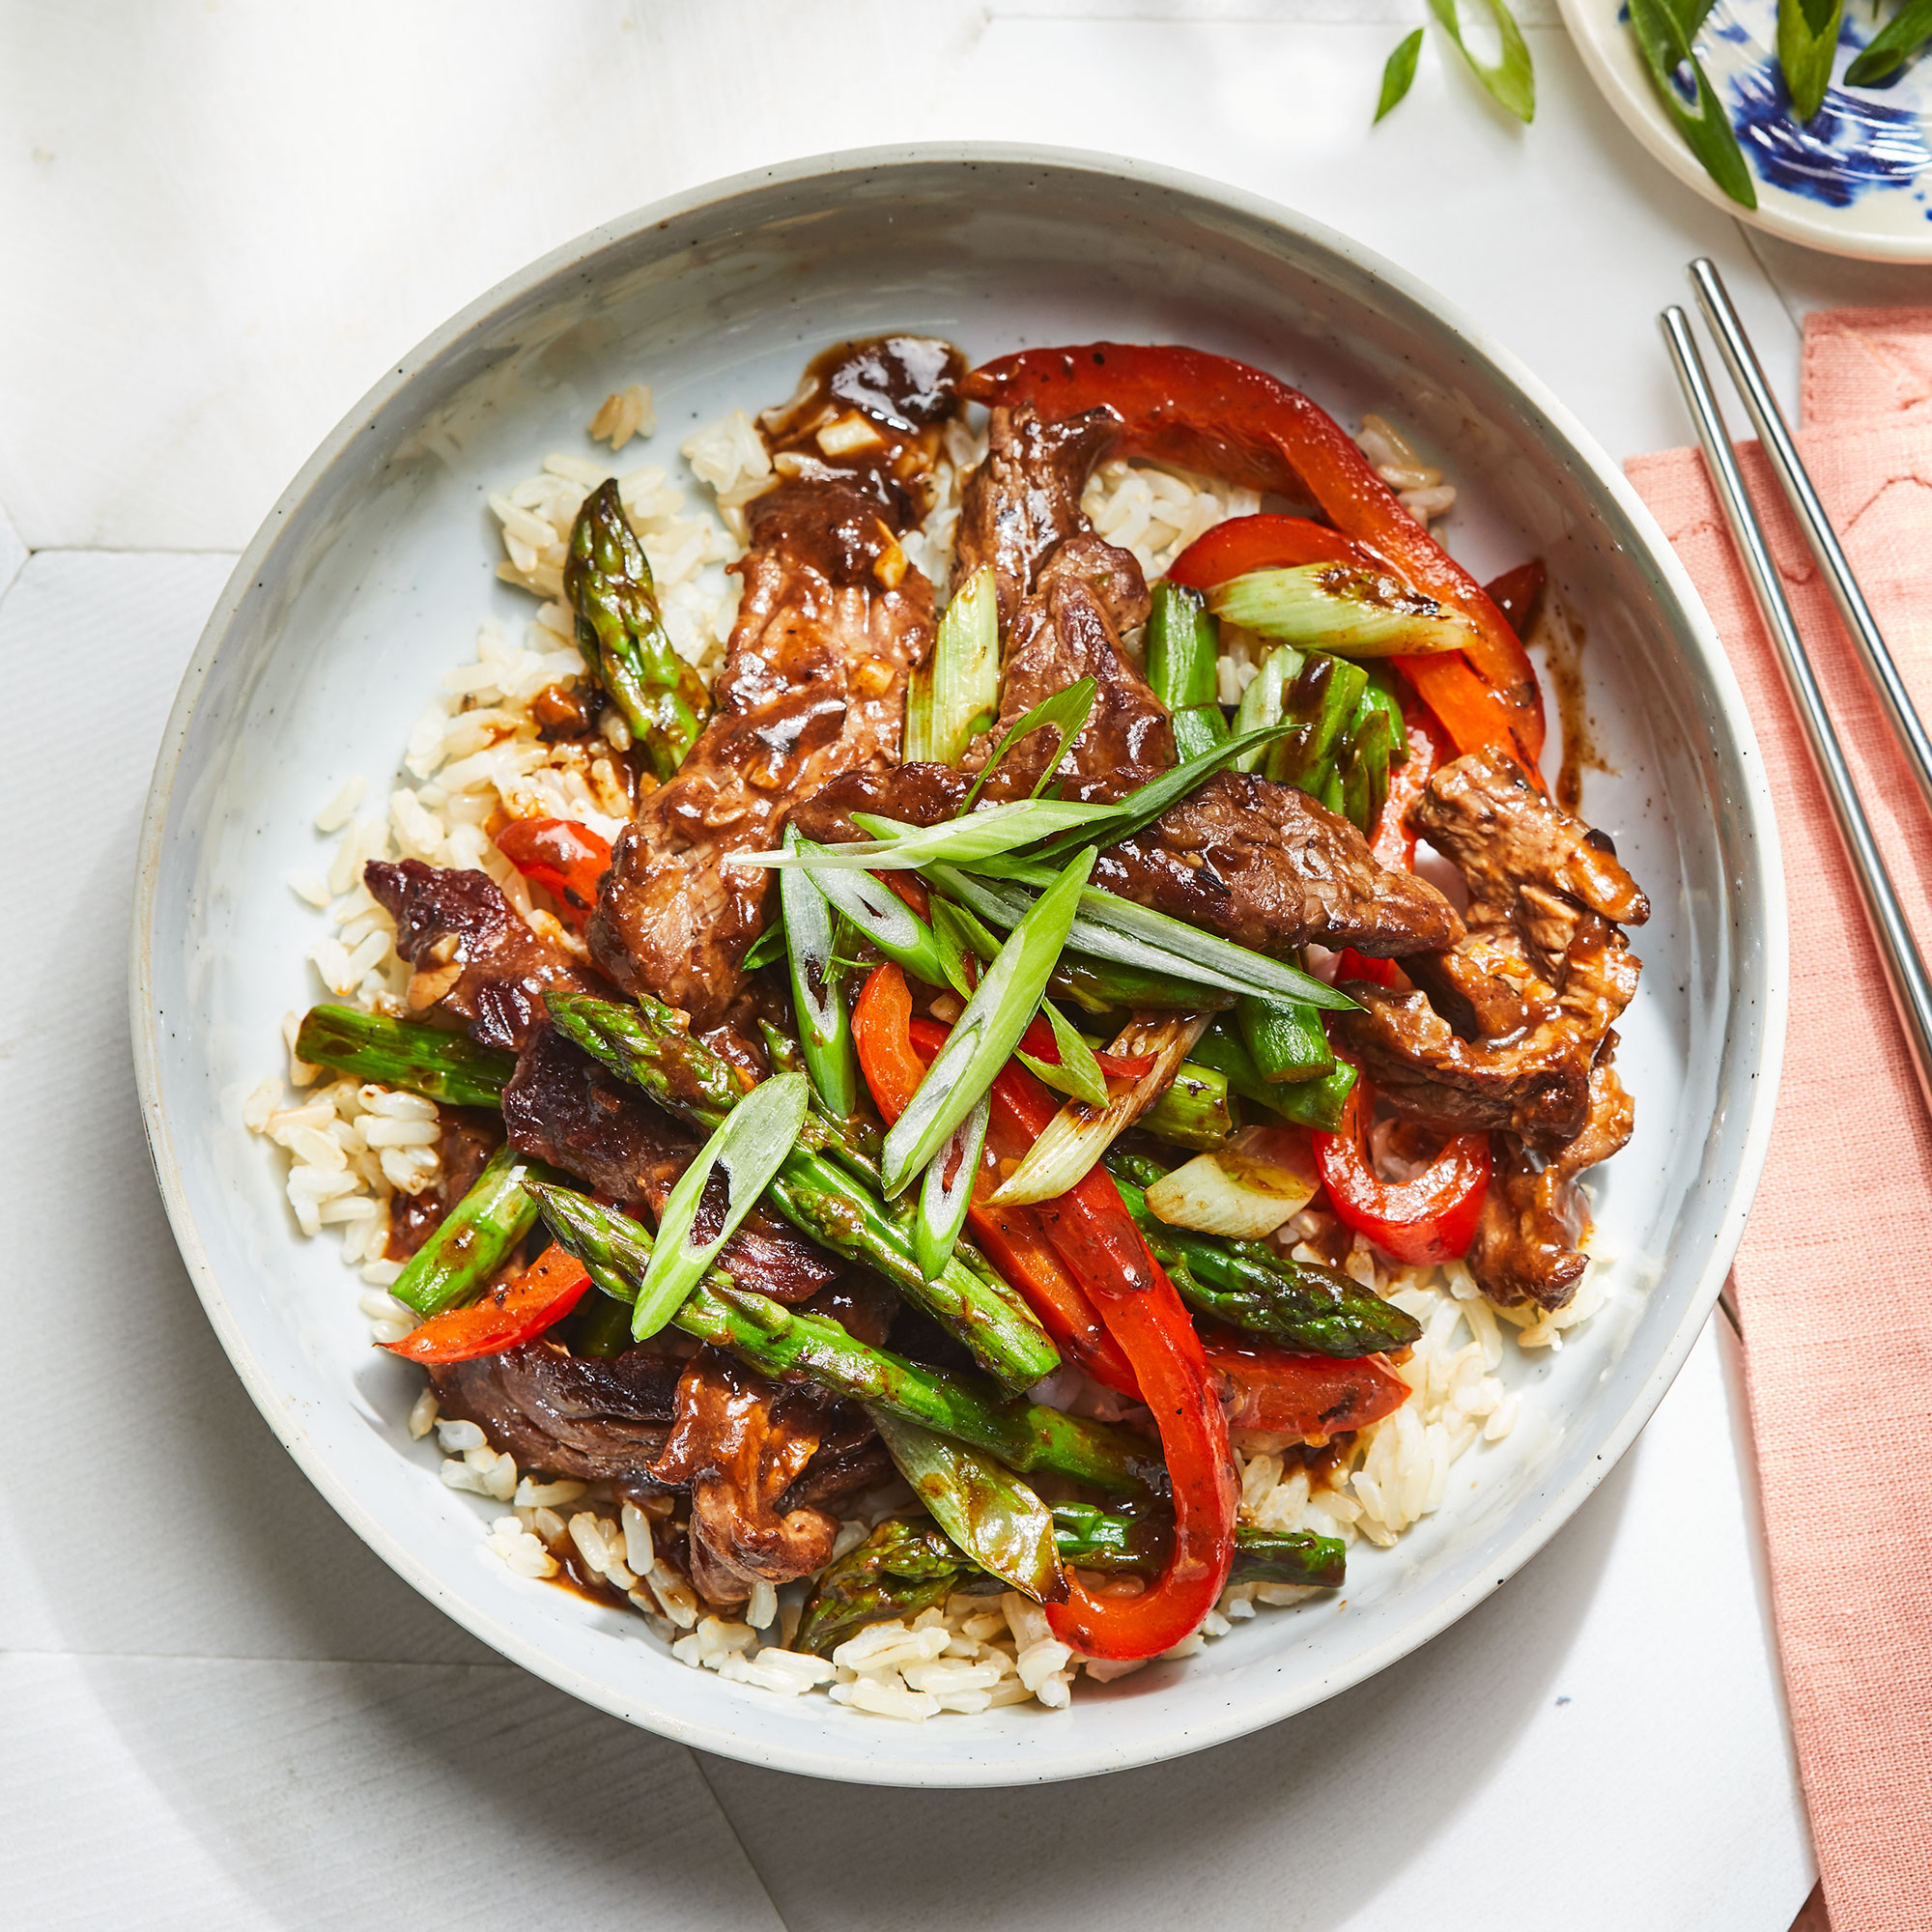 Steak & Vegetable Stir-Fry with Black Bean-Garlic Sauce